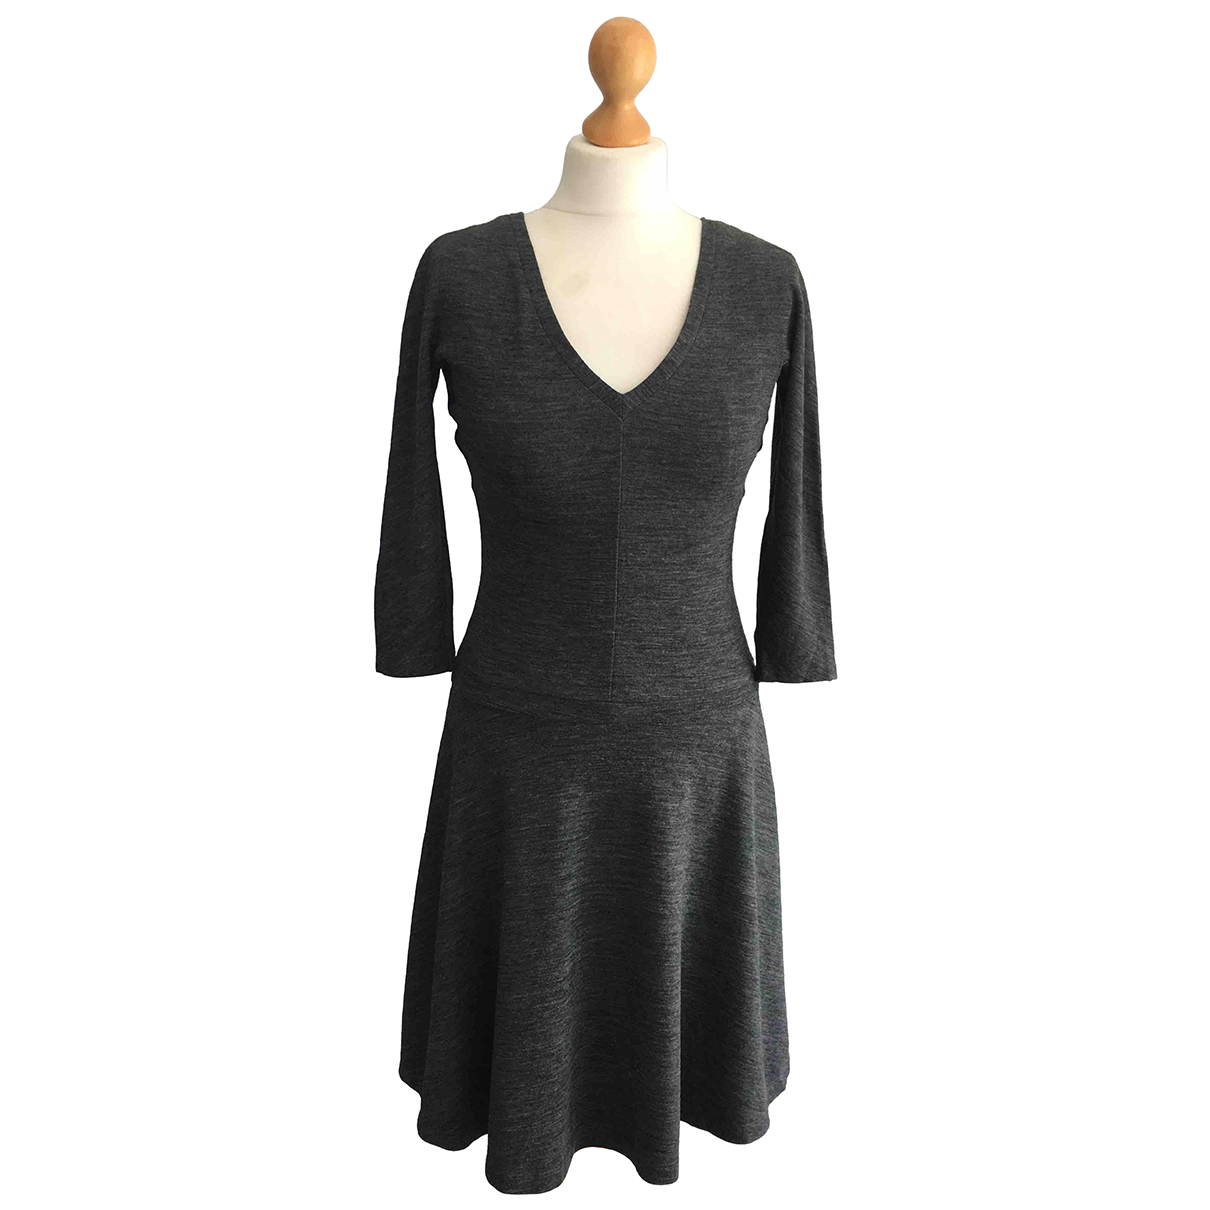 Gio' Guerreri N Grey Wool dress for Women 40 IT